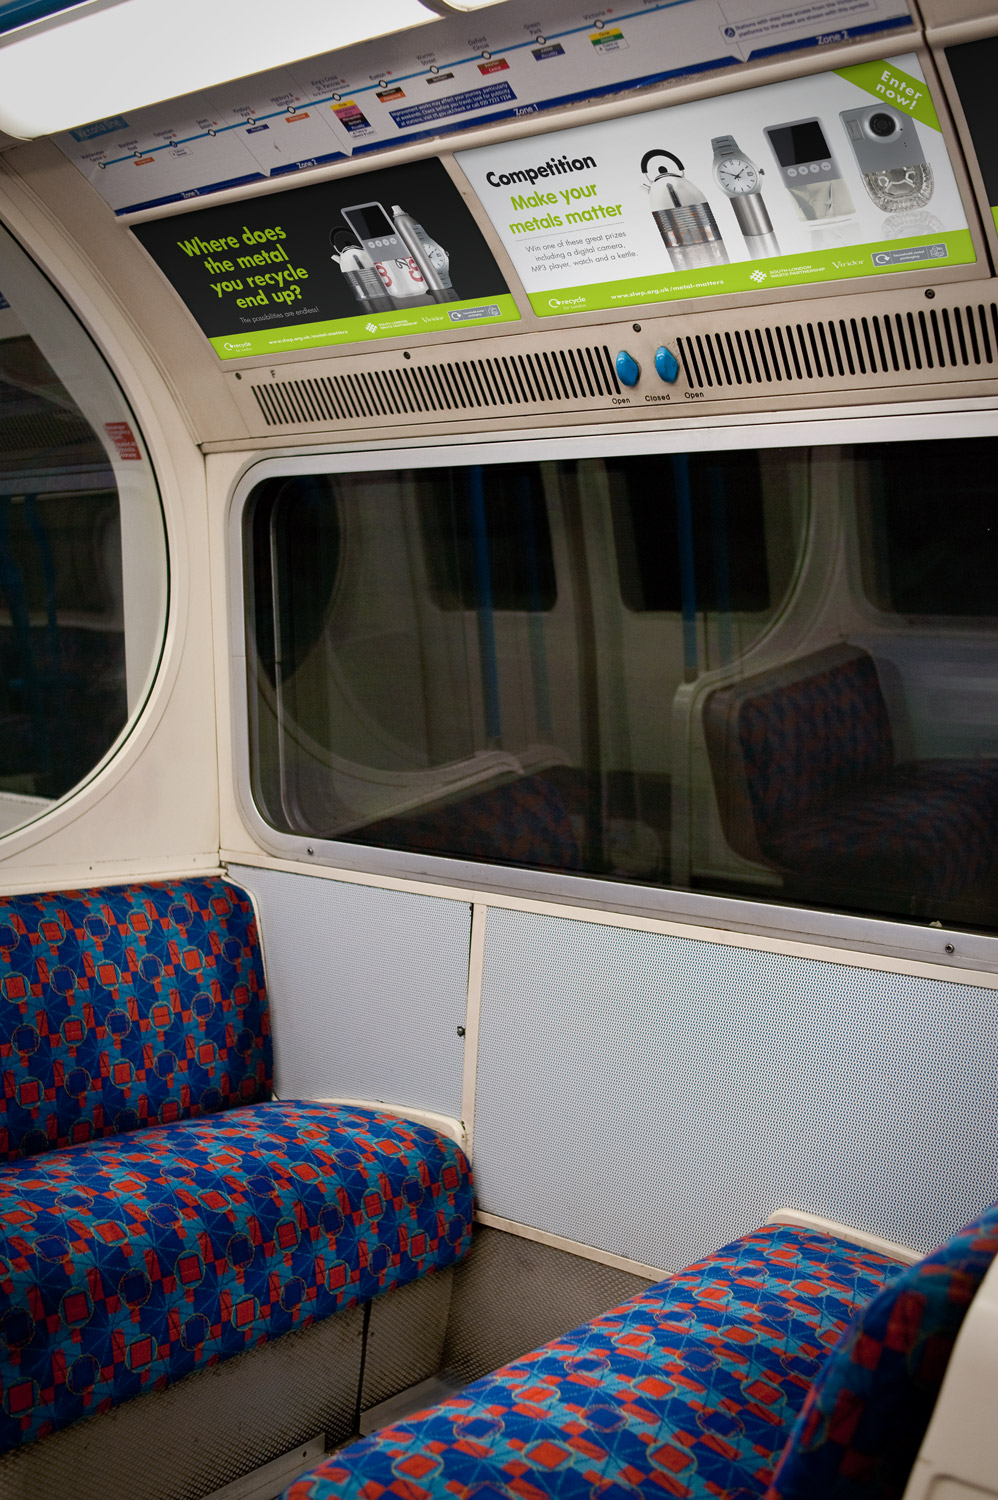 Alupro-Recycling-London-Tube-Advertising-Poster-by-Get-it-Sorted.jpg